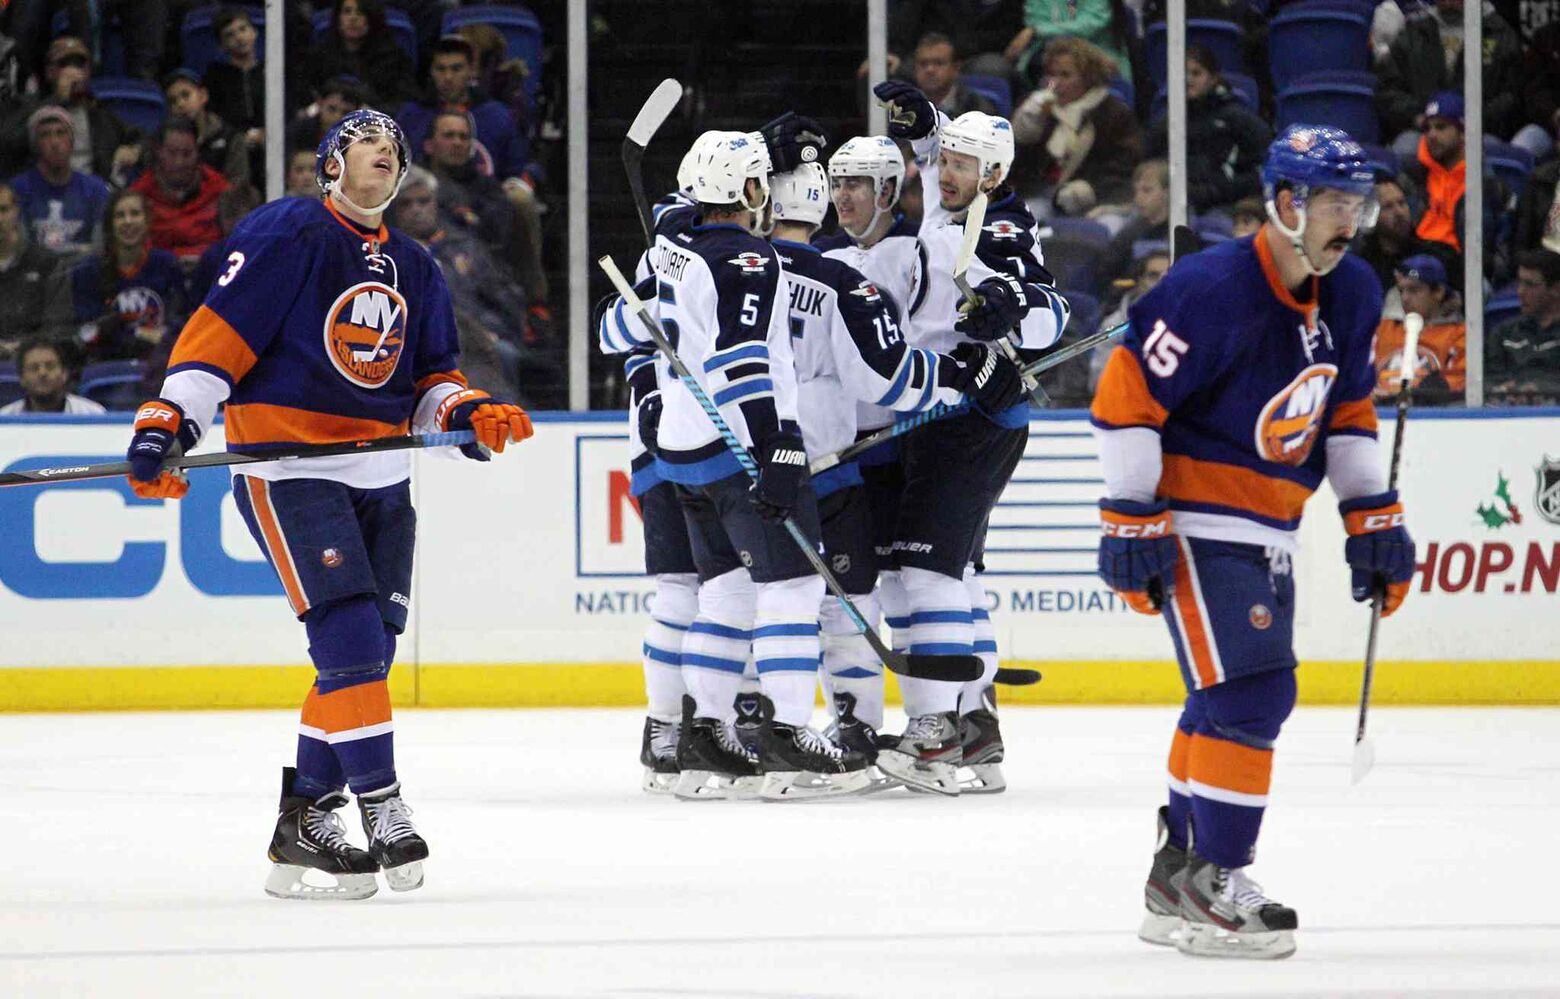 The Winnipeg Jets celebrate a goal during the second period.